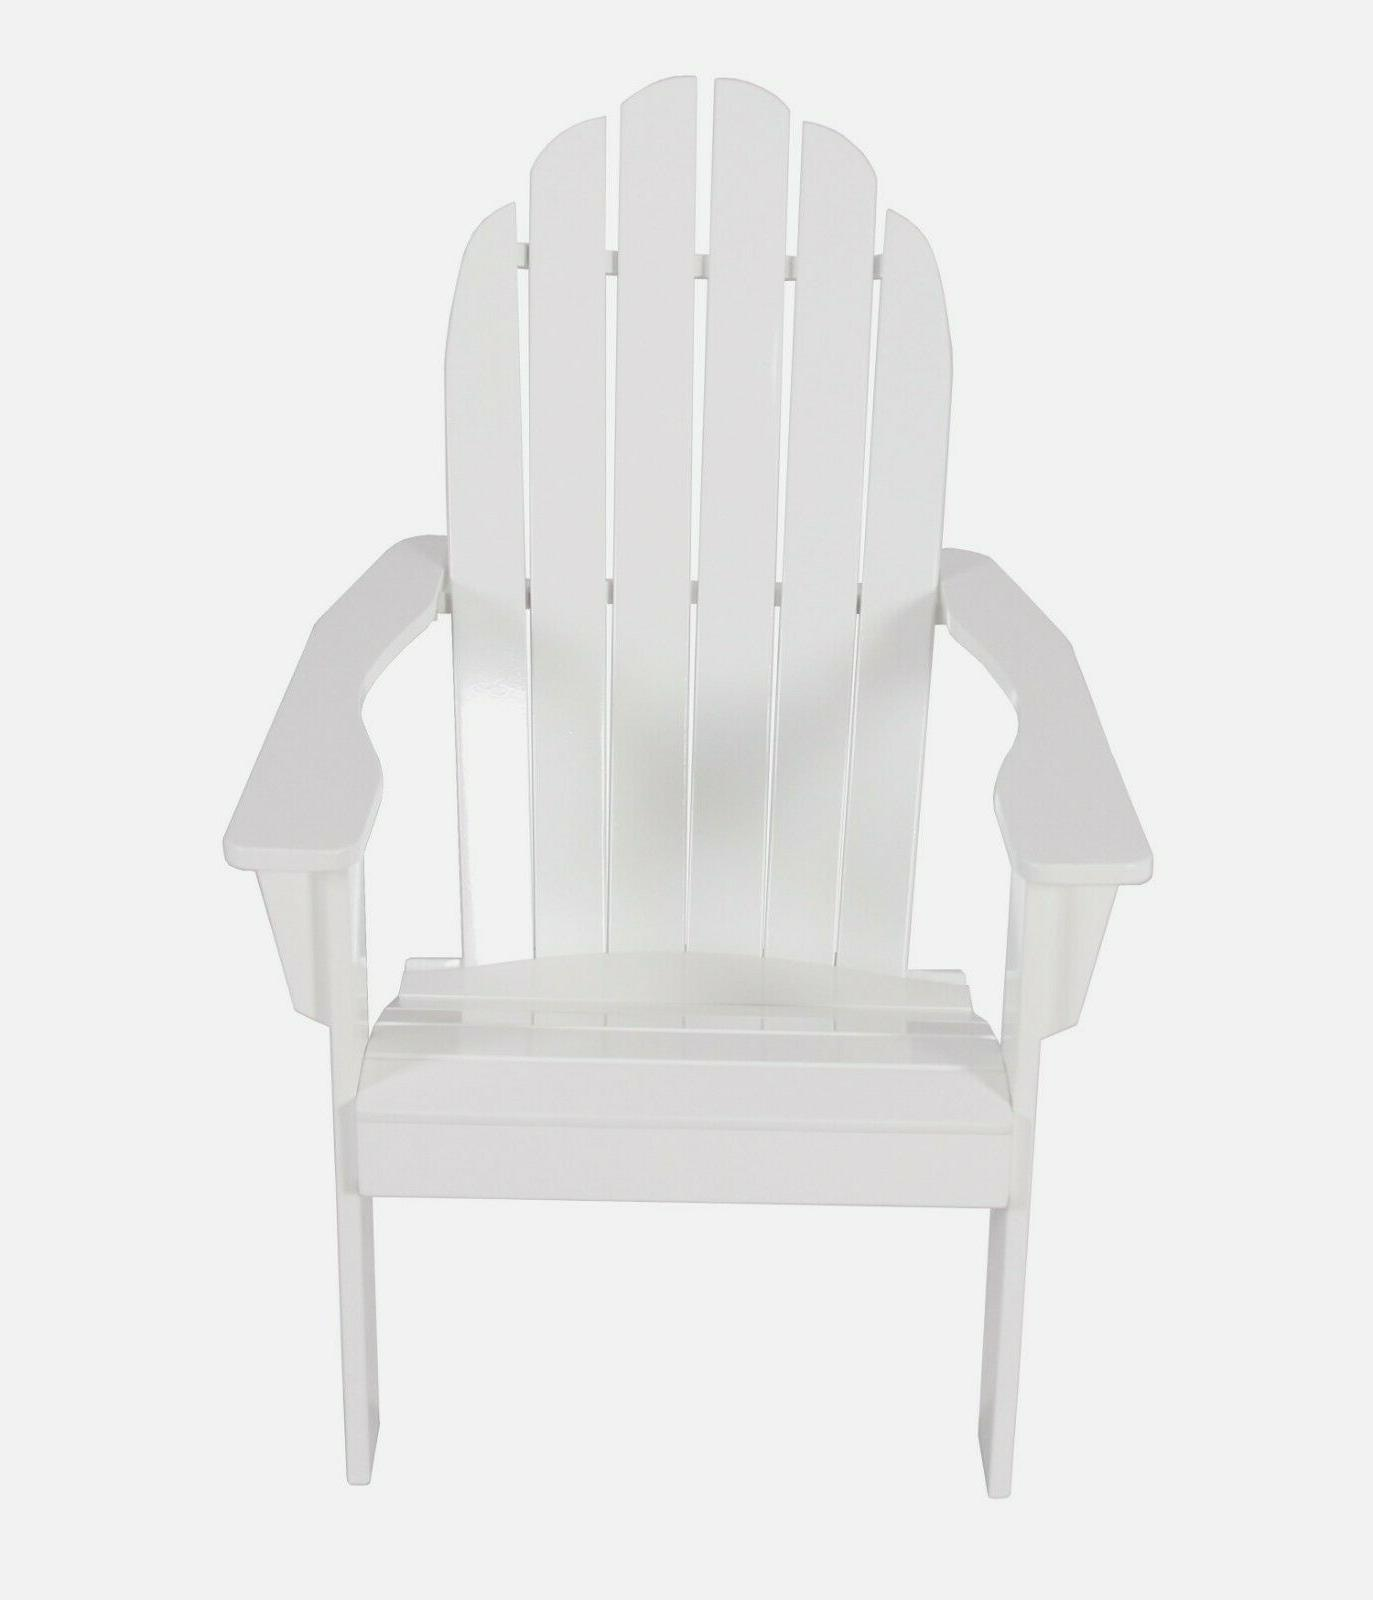 Mainstays Wooden Outdoor Chair, White Hardwood